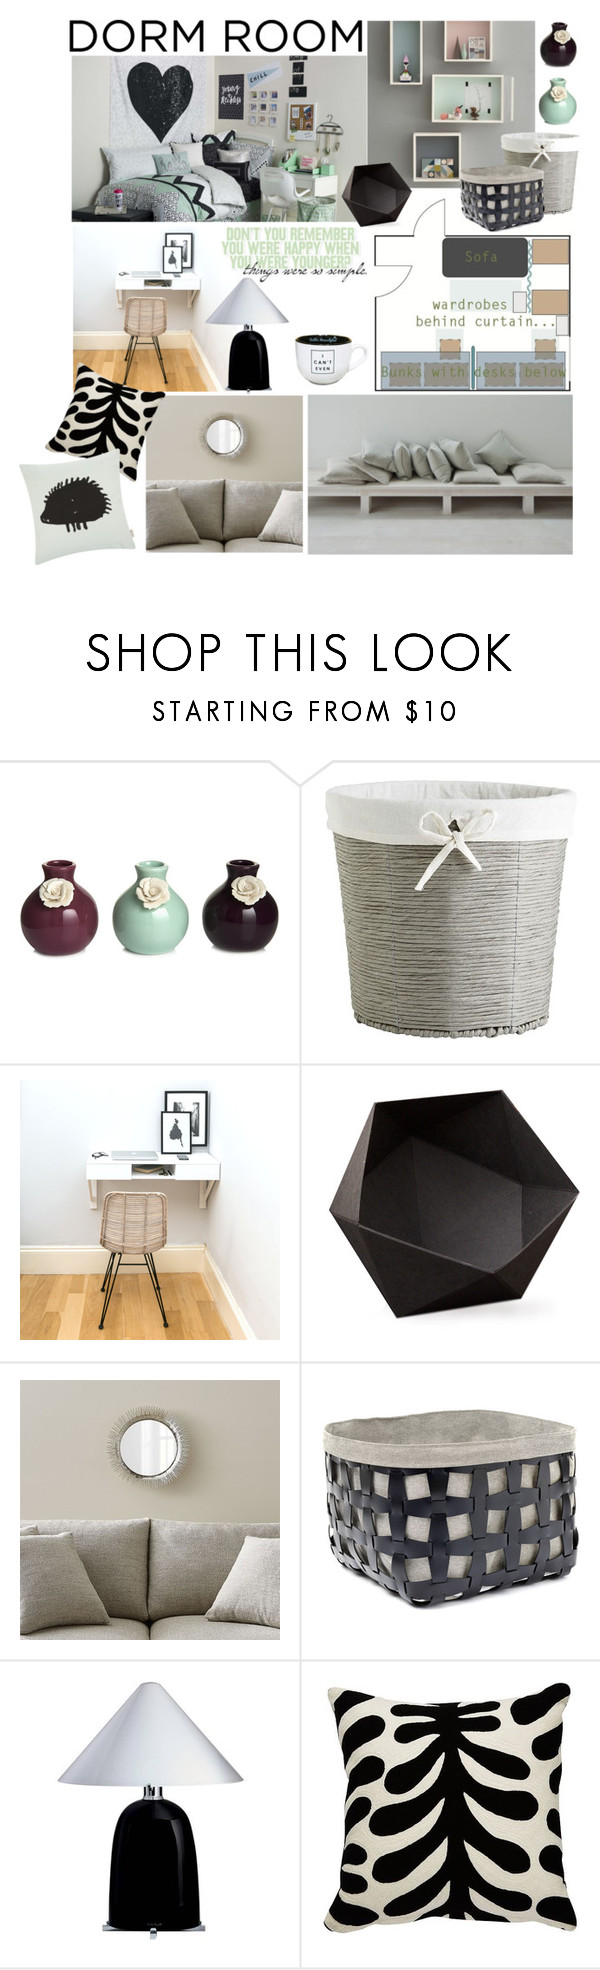 """Neutral Dorm Room"" by taci42 ❤ liked on Polyvore featuring interior, interiors, interior design, home, home decor, interior decorating, Pier 1 Imports, Kami Design, Crate and Barrel and Pinetti"